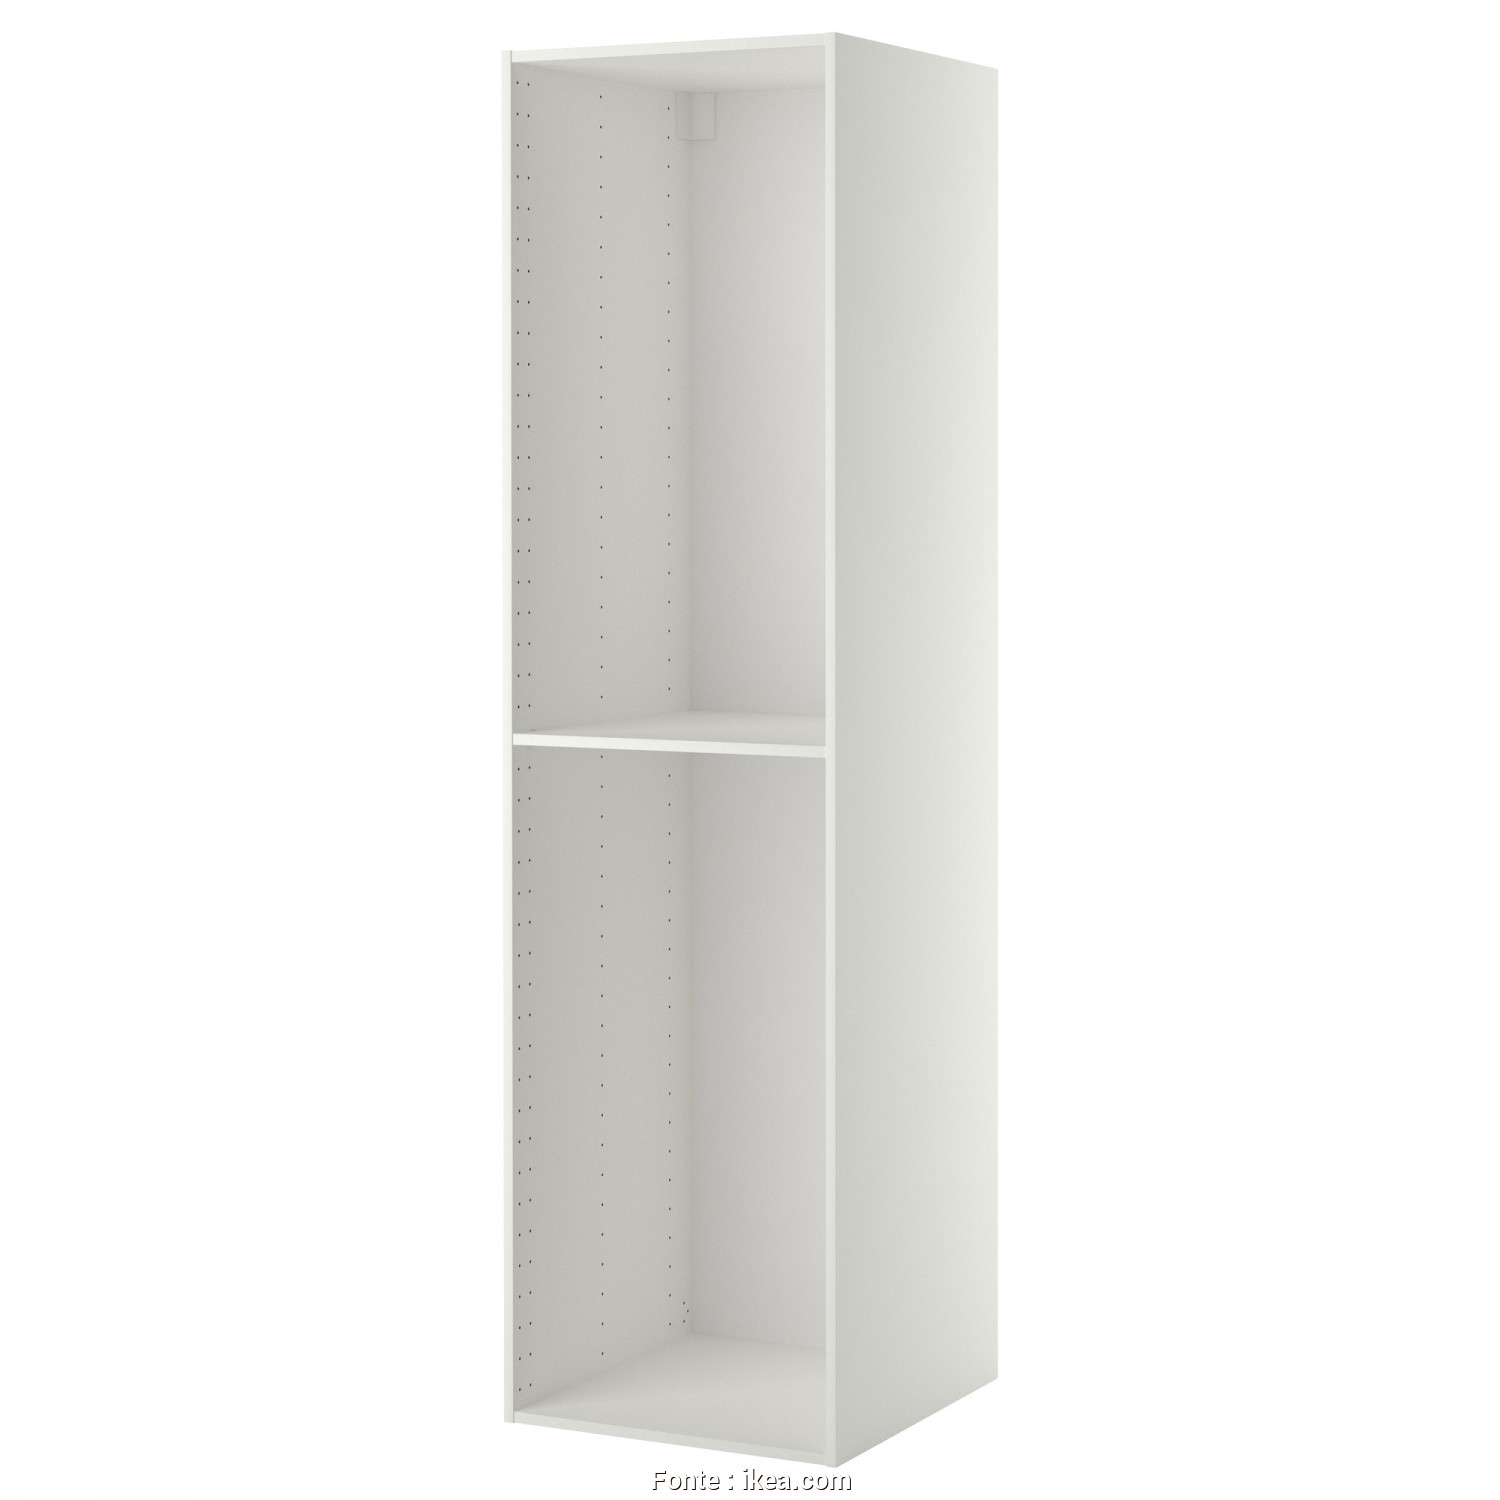 Copricuscini 60X60 Ikea, Bella IKEA METOD High Cabinet Frame 1 Reinforced Shelf Included; Increases Stability